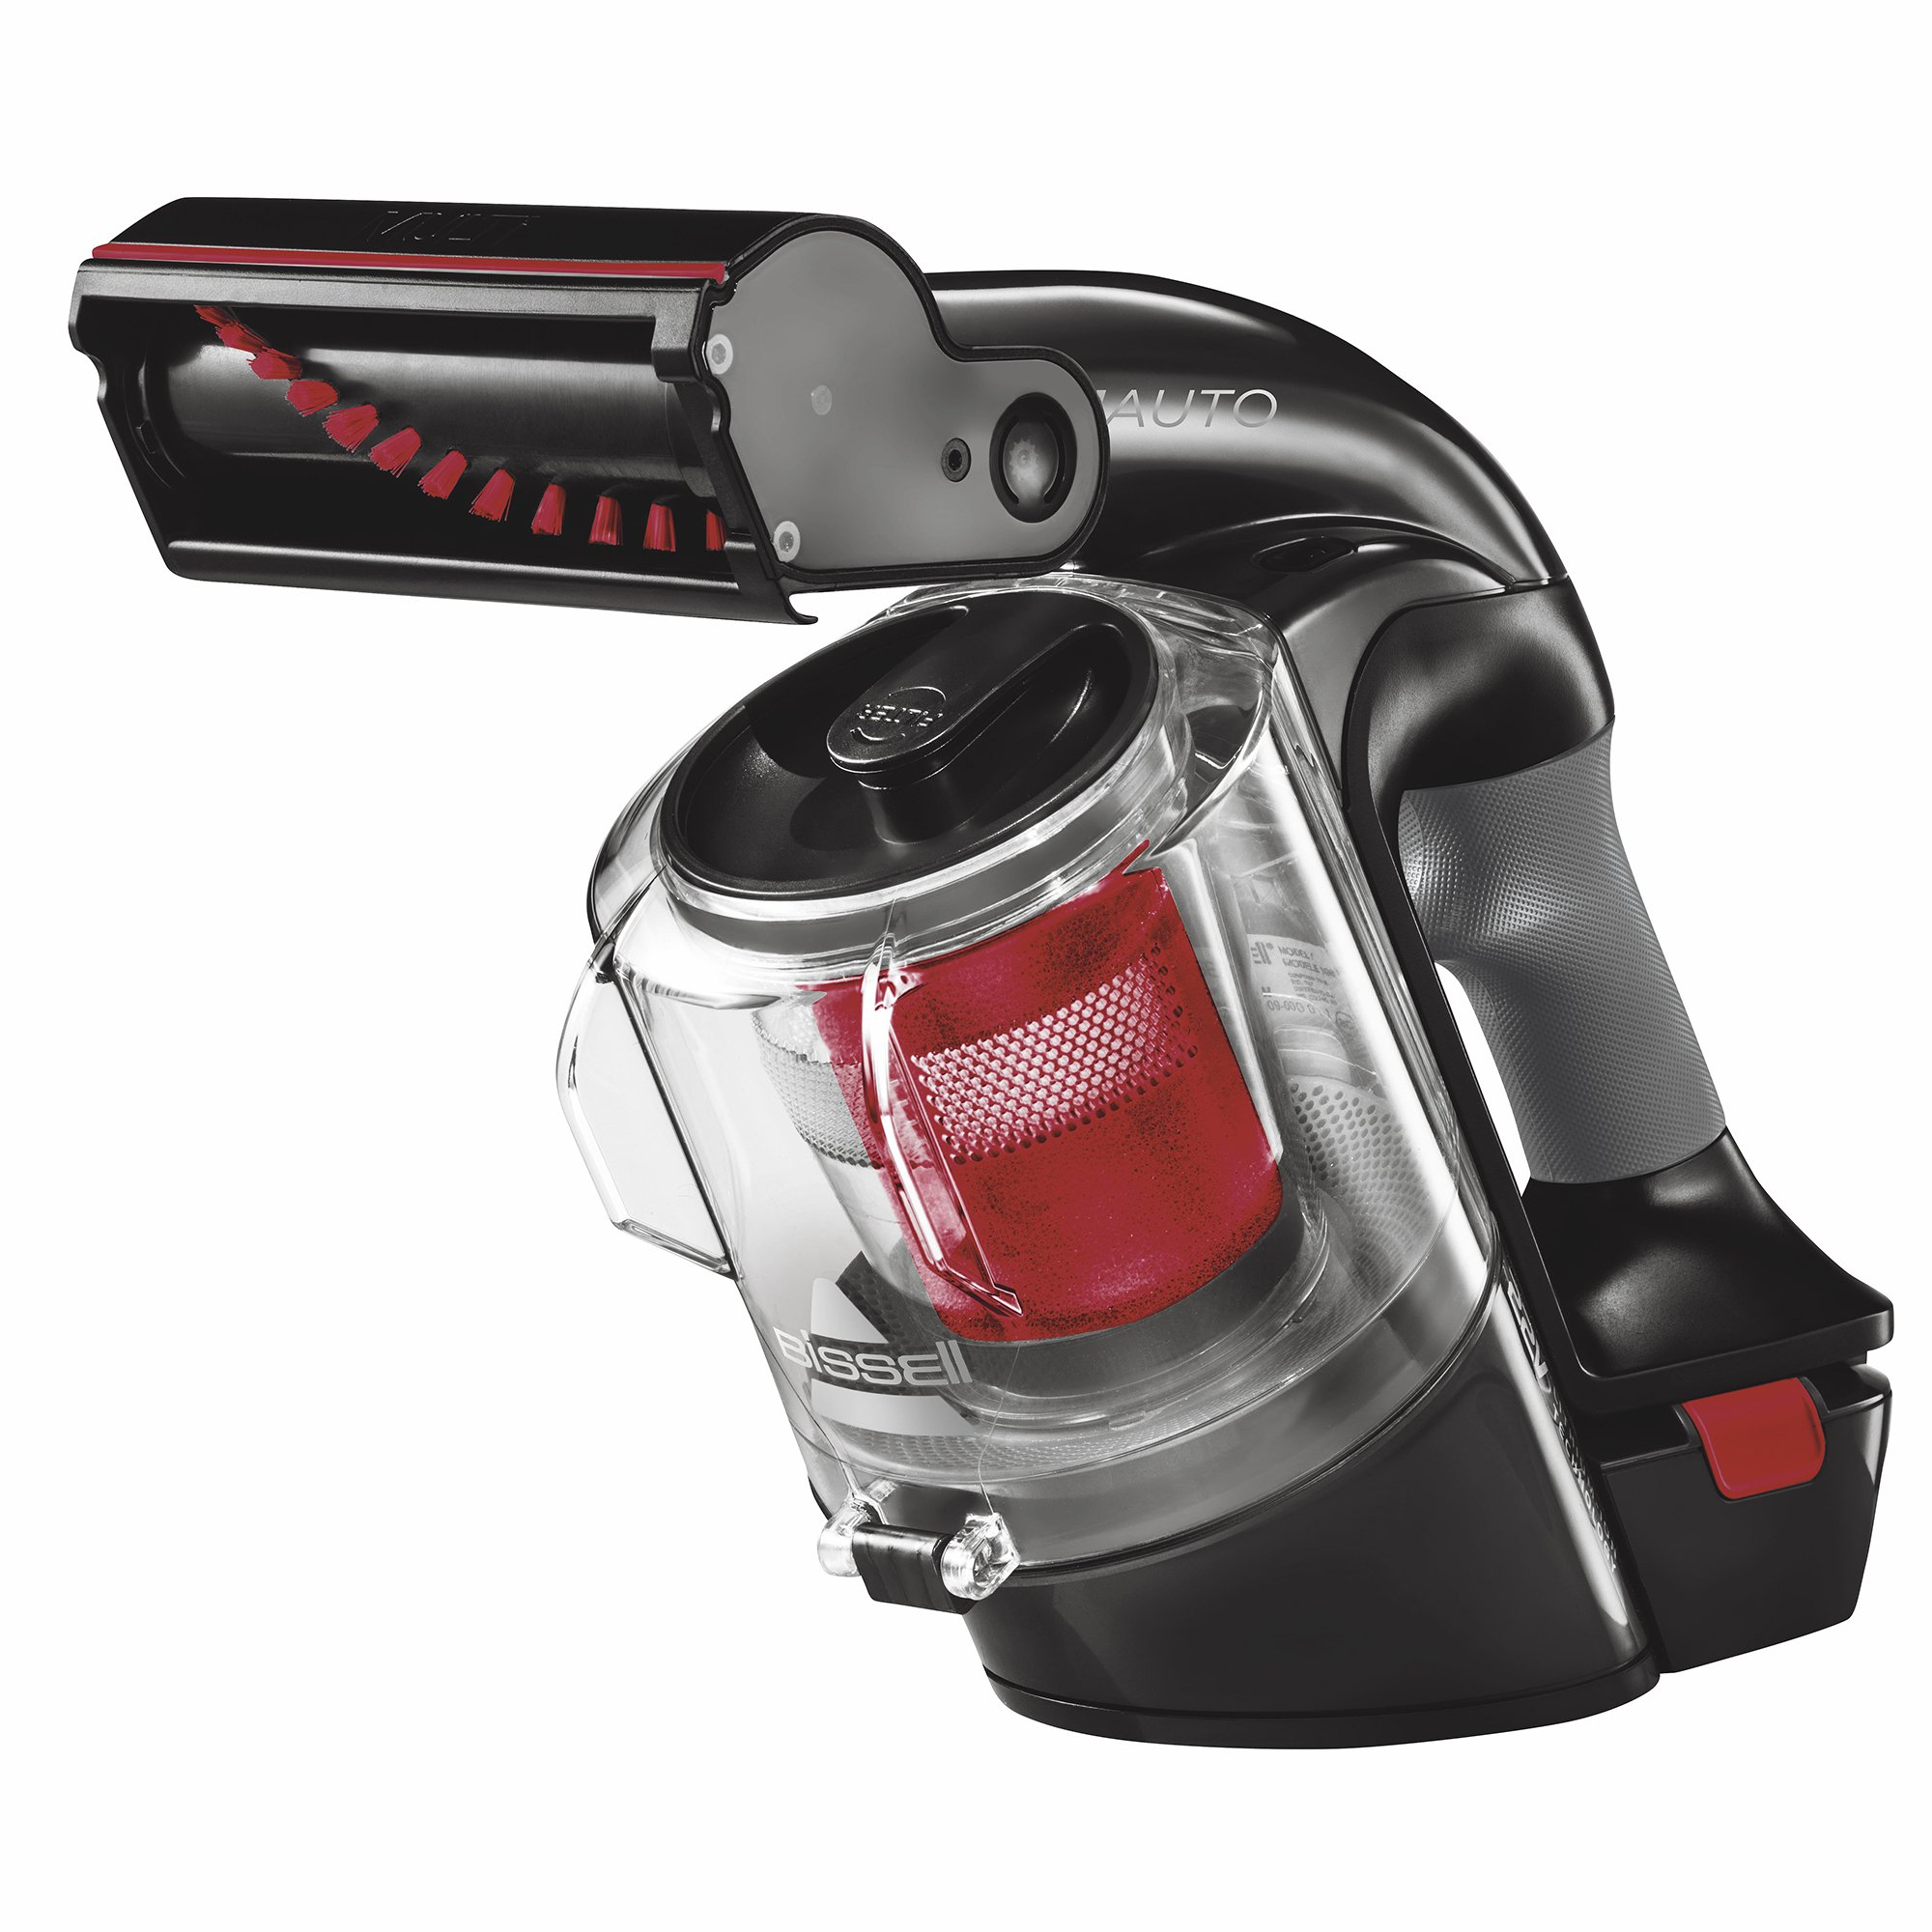 BISSELL Multi Auto Lightweight Lithium Ion Cordless Car Hand Vacuum, Red, 19851 by Bissell